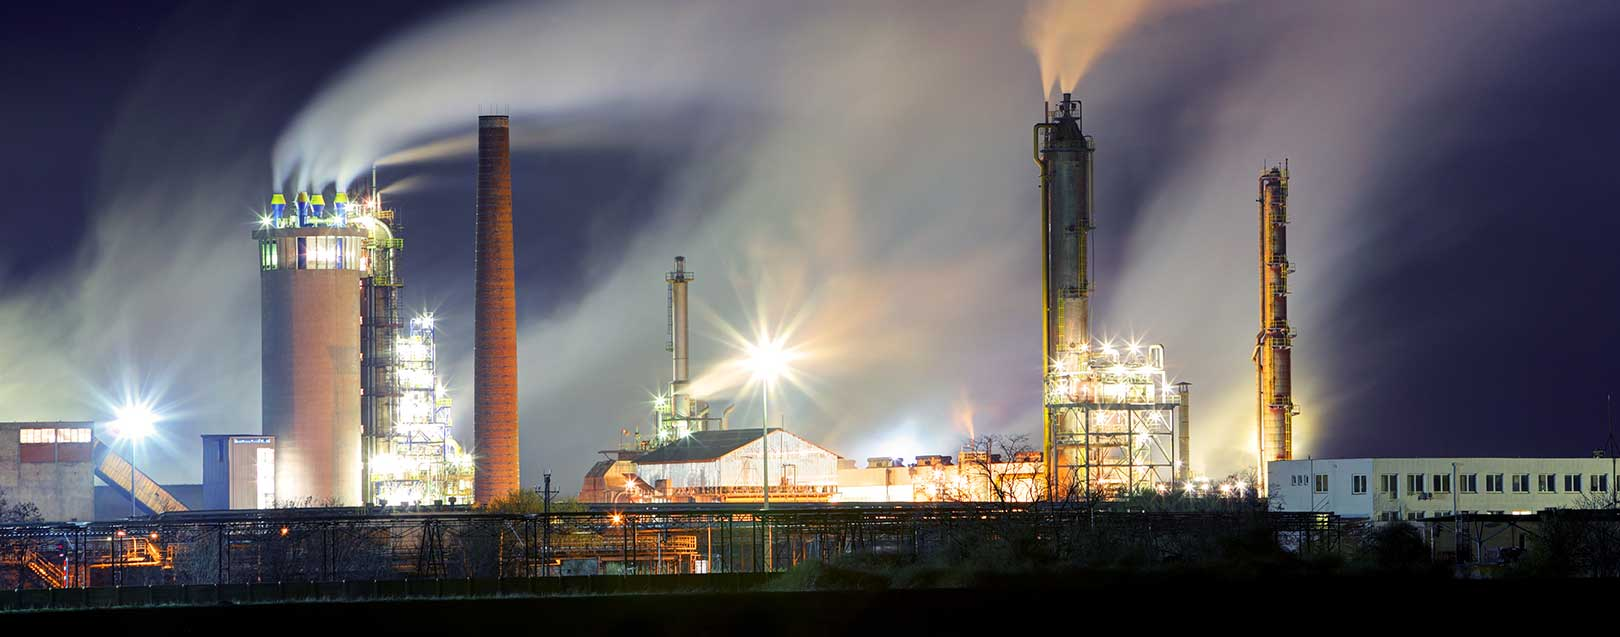 Govt plans chemical hubs to boost industry